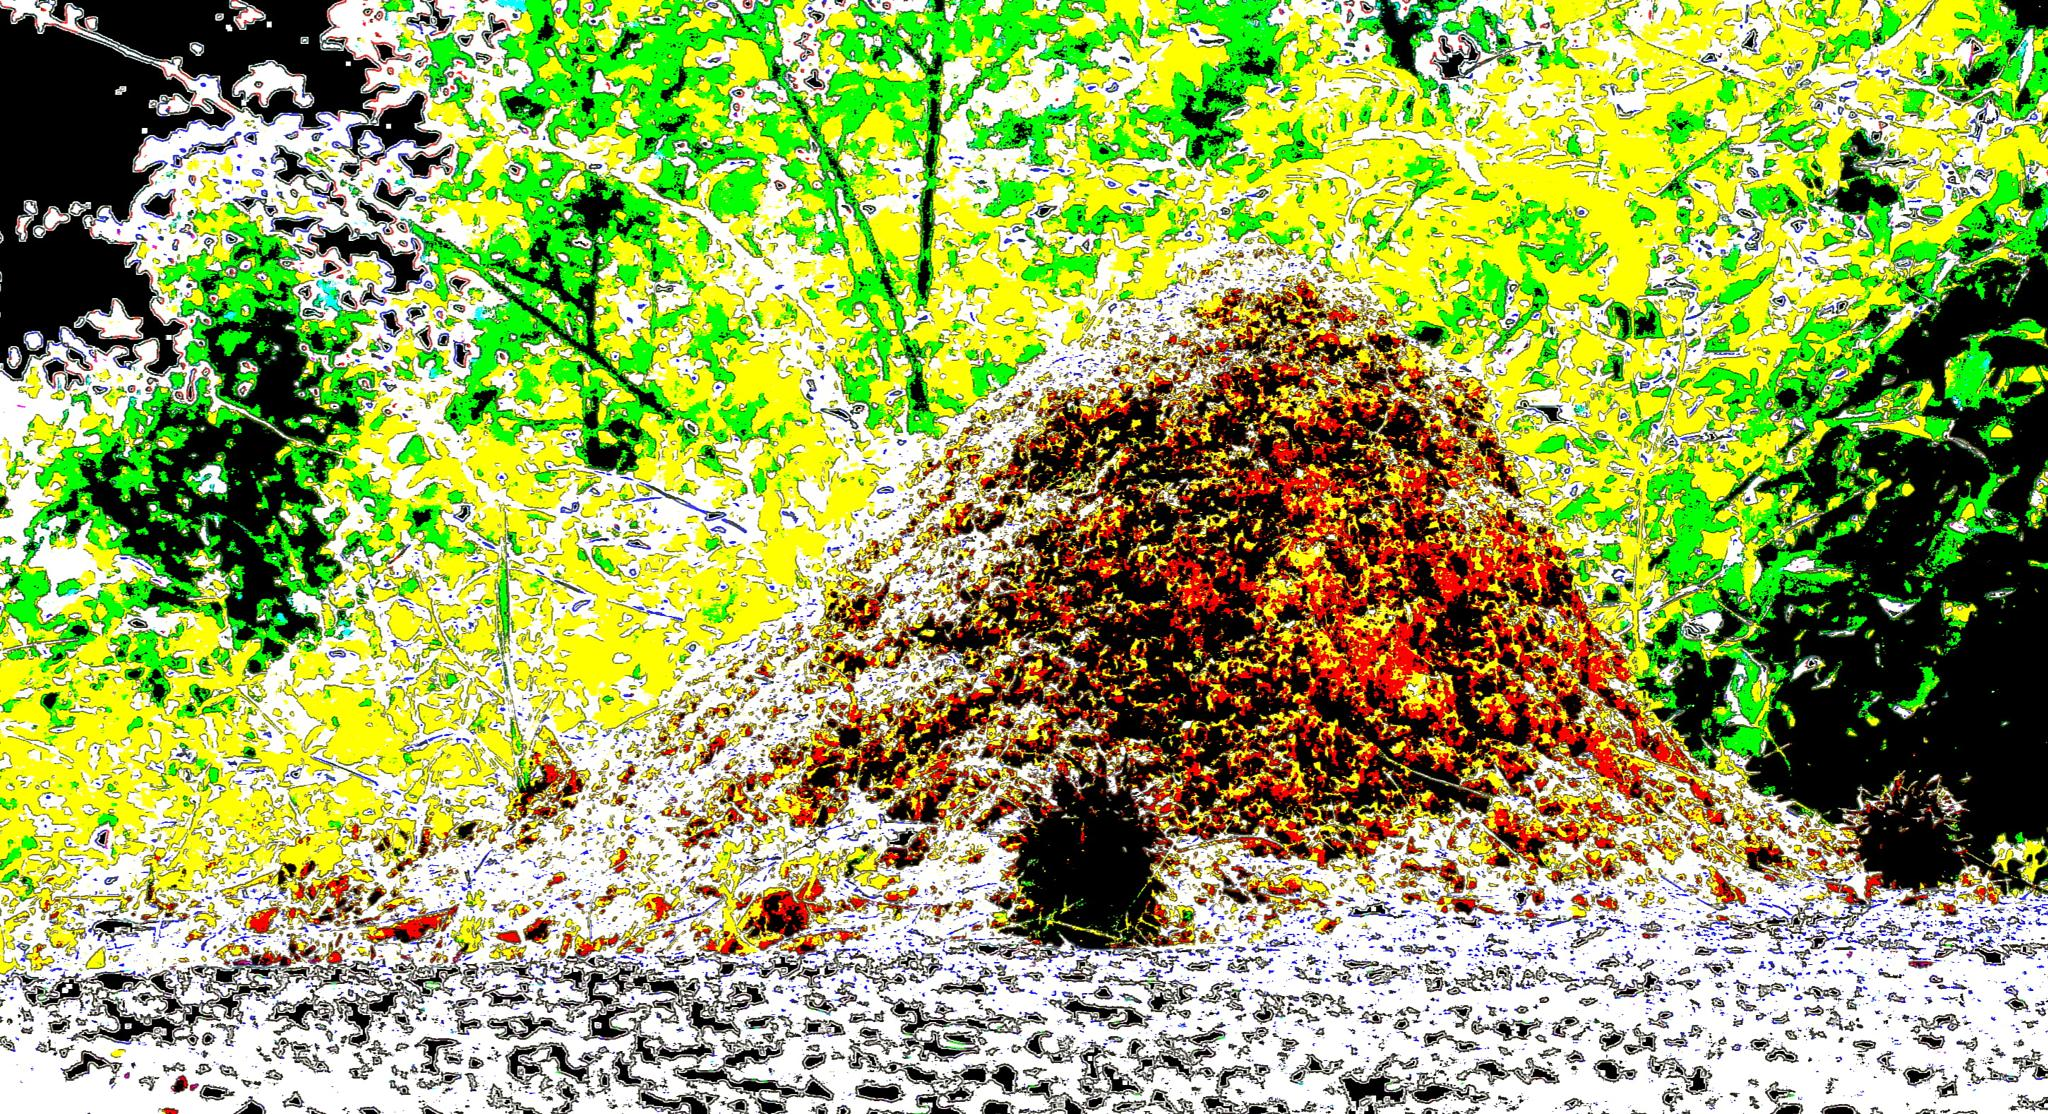 Ant Hill by Zany Dee